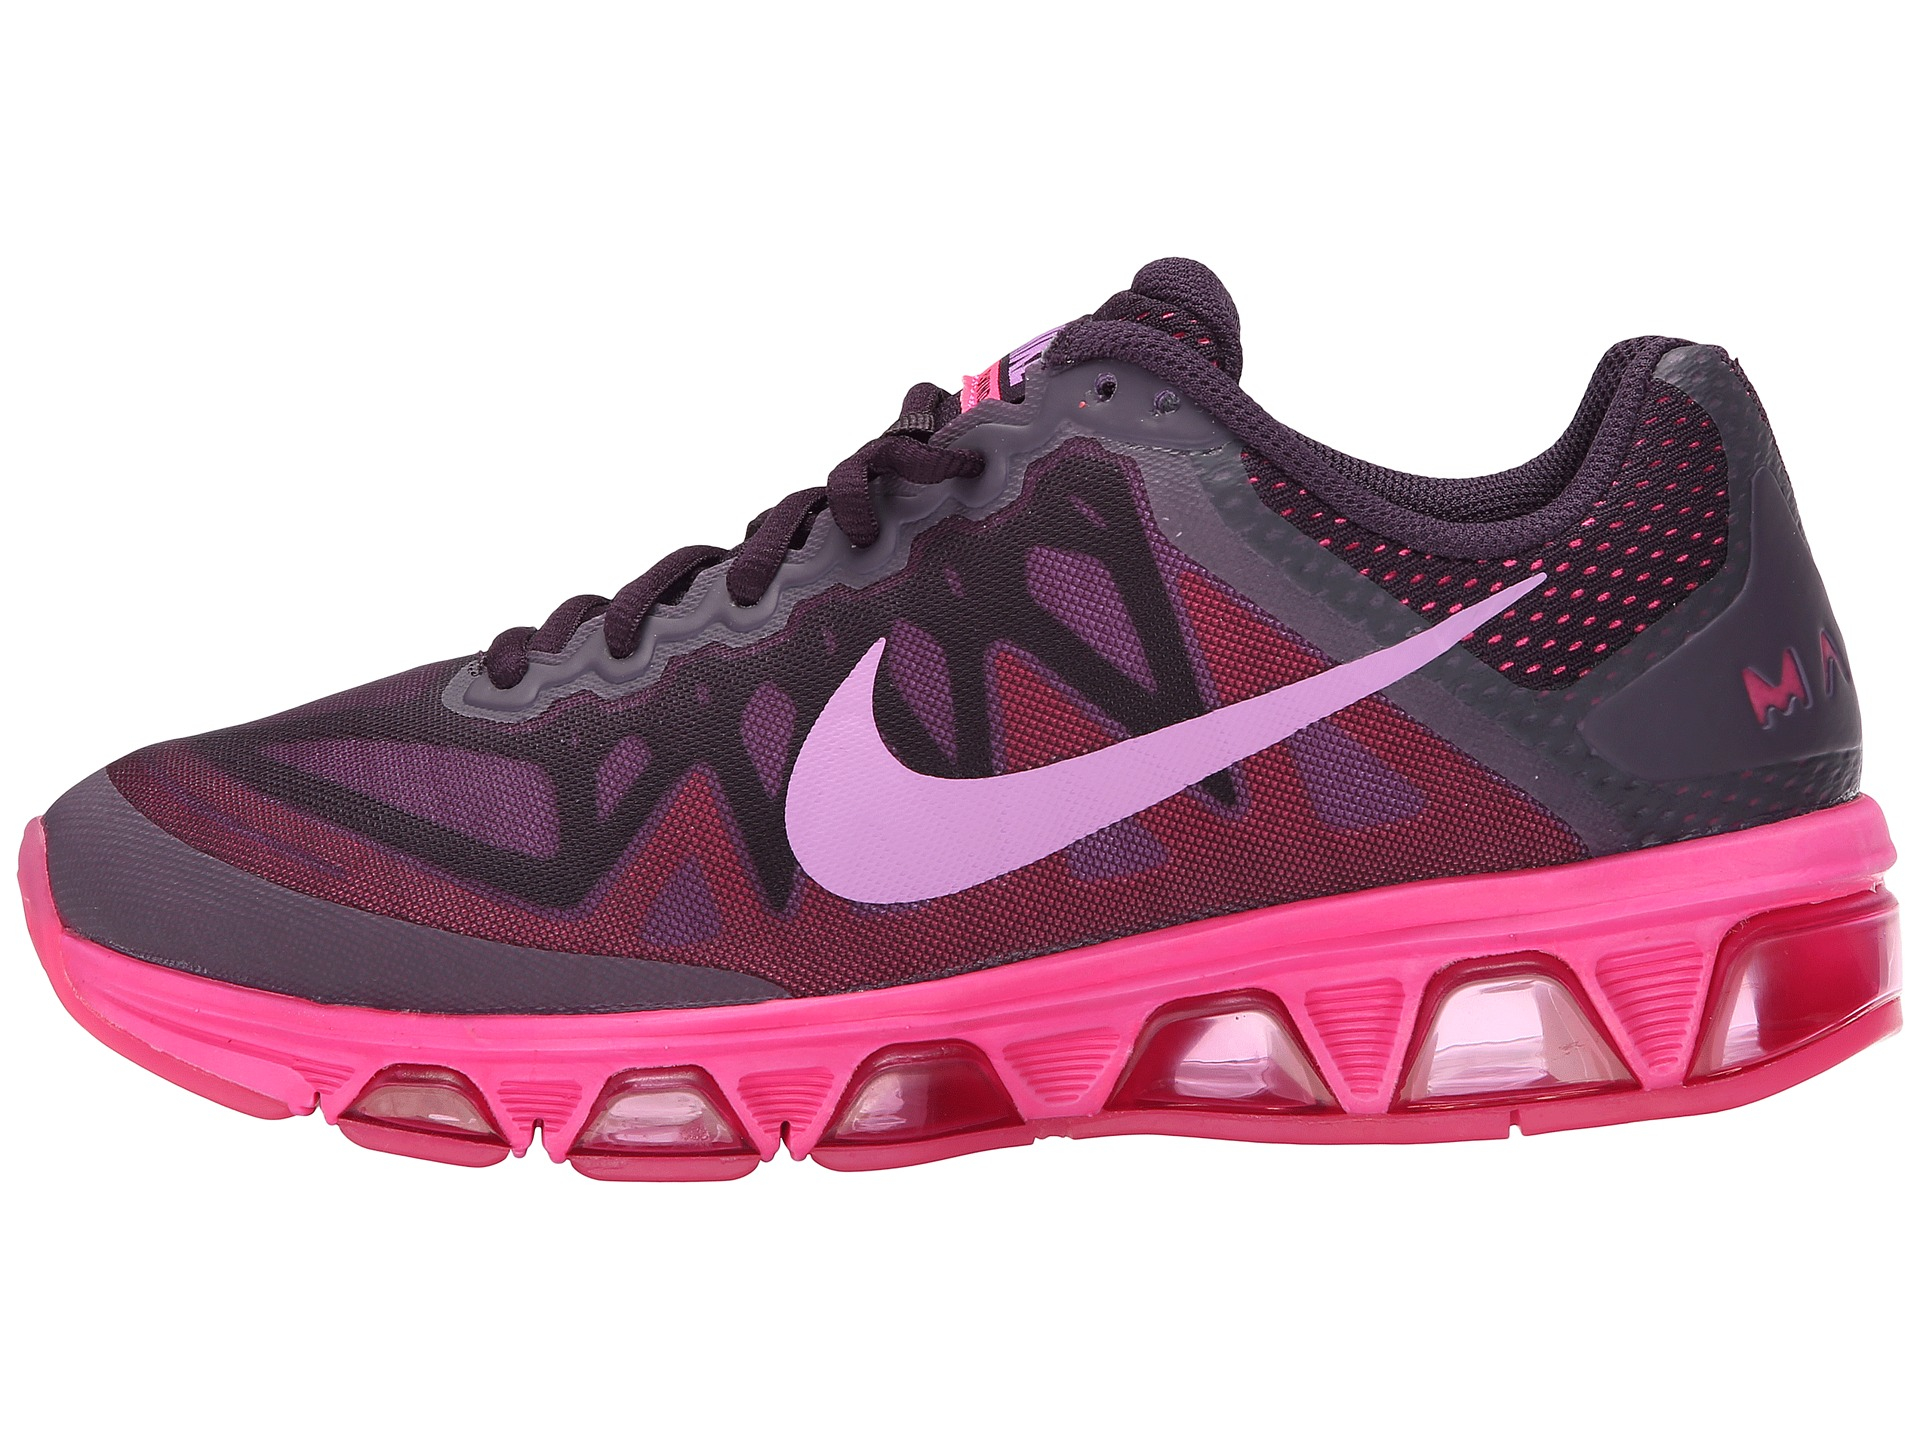 newest b3d36 28009 ... camel  nike air max tailwind 7 purple white ...